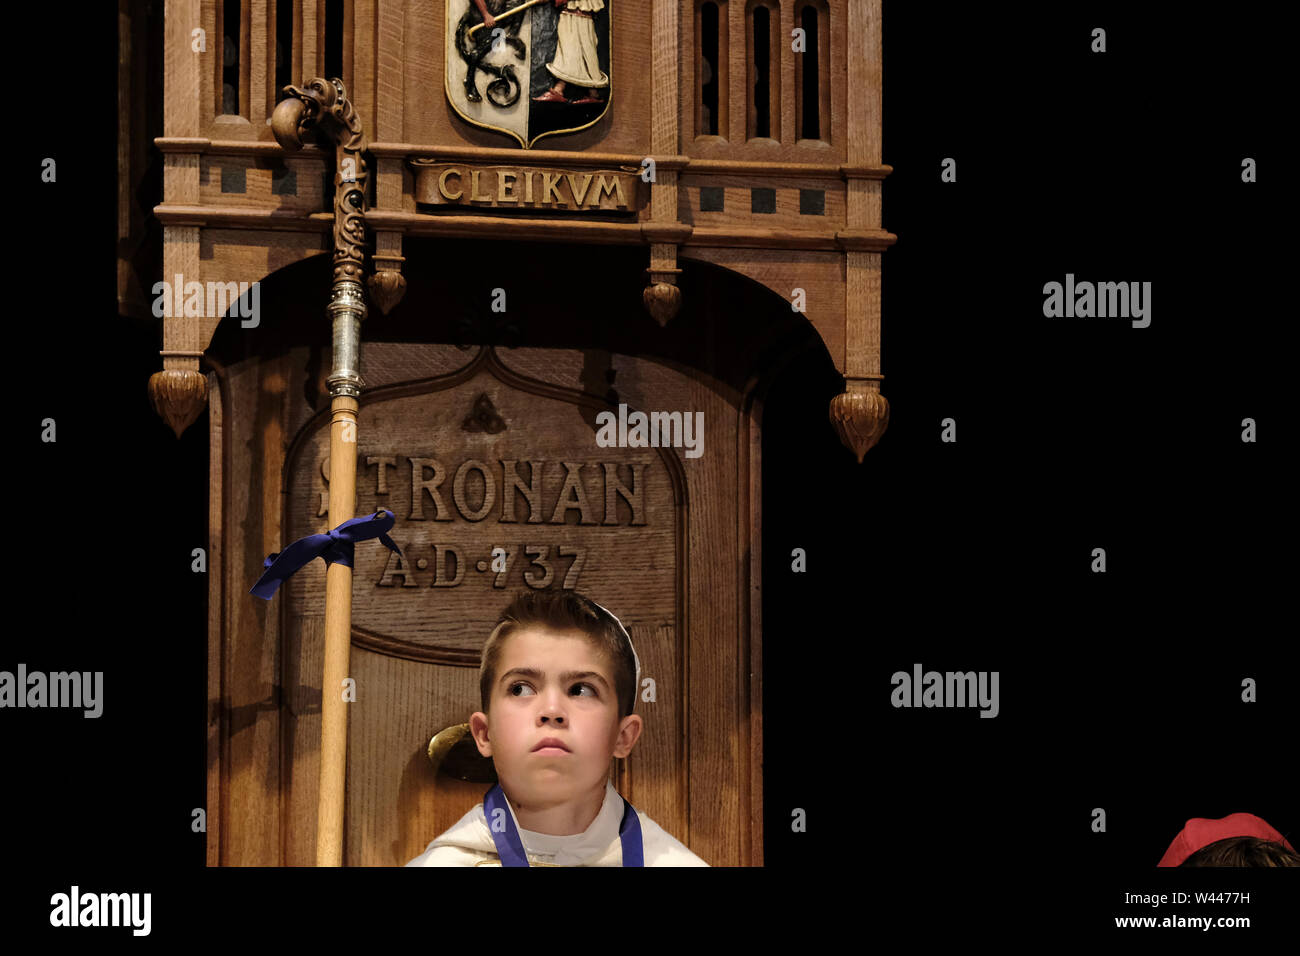 Innerleithen, UK. 19th July, 2019. St Ronans Cleikum Dux Boy of St RonanÕs School Aaron R Glendinning (seated on throne) after his installation at the Cleikum Ceremonies in Memorial Hall, Innerleithen. as part of St RonanÕs Games Week, Friday 19 July 2019 . Instituted in 1827, The Games are the oldest organised sports meeting in Scotland and are now part of a week long festival that incorporates many events for every age group. Central to the festivities are the Cleikum Ceremonies when the town's association with its Patron Saint, St. Ronan, is celebrated ( Credit: Rob Gray/Alamy Live News - Stock Image